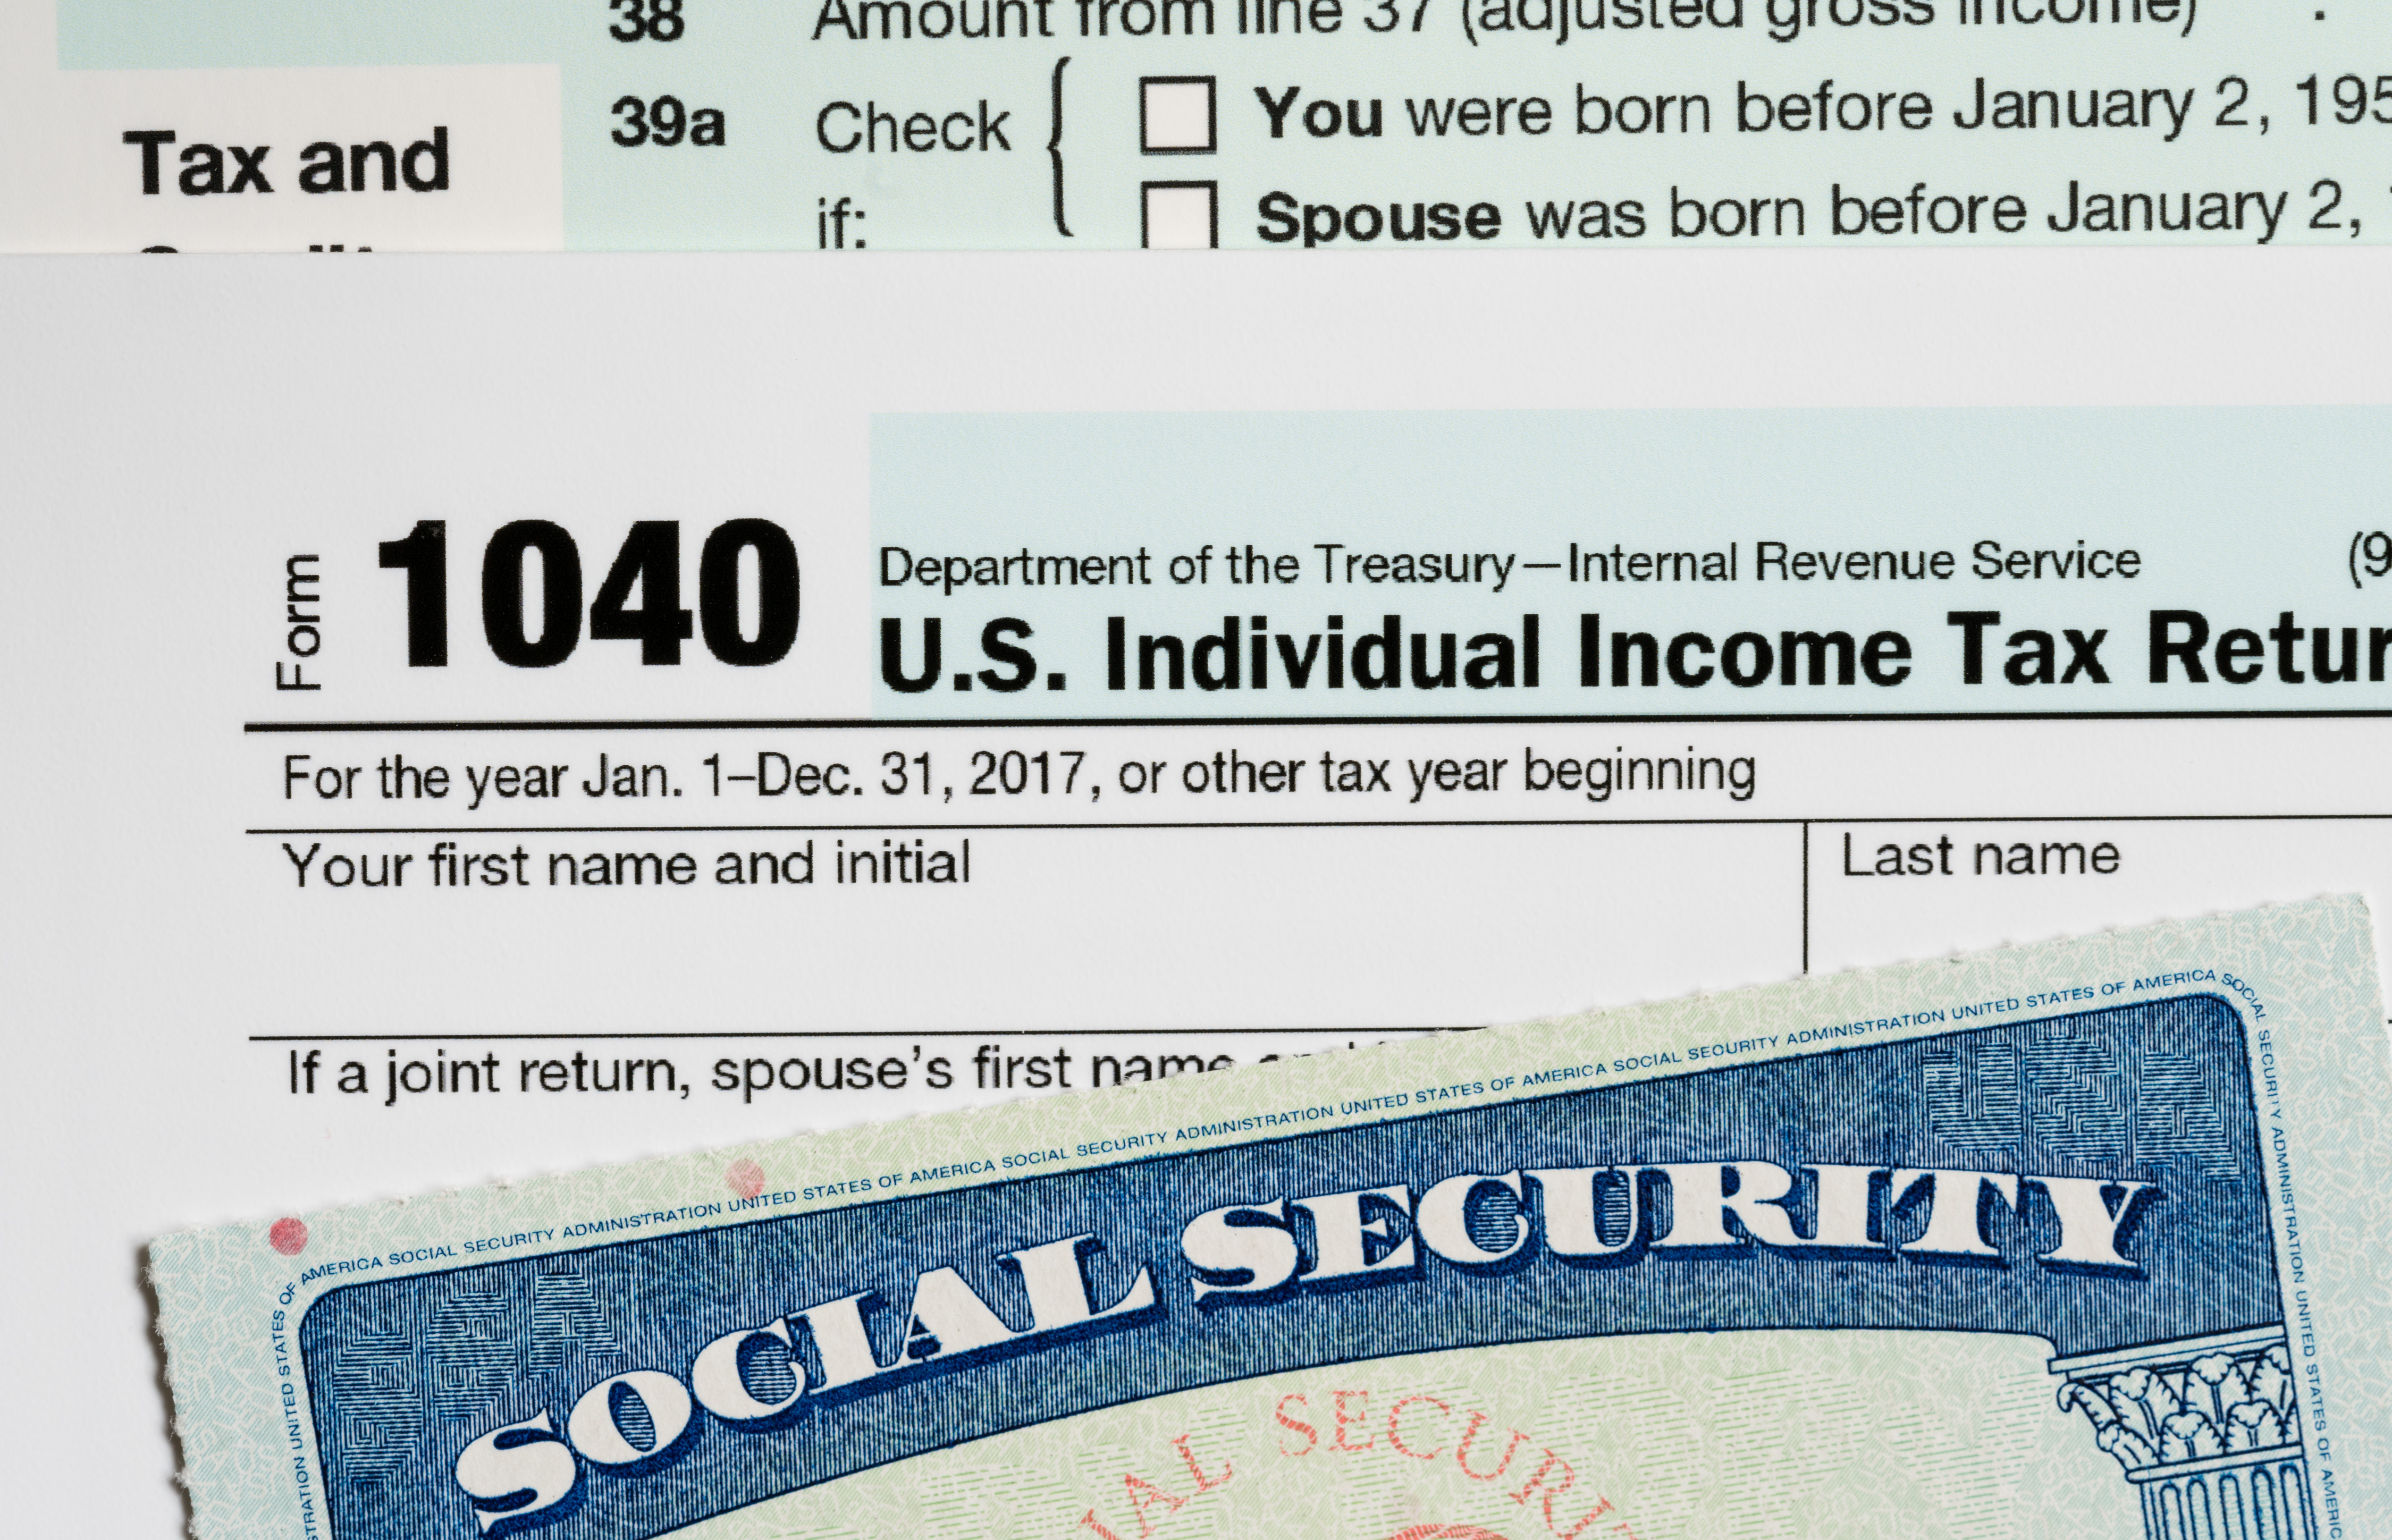 USA Social Security Card on calculations of tax for